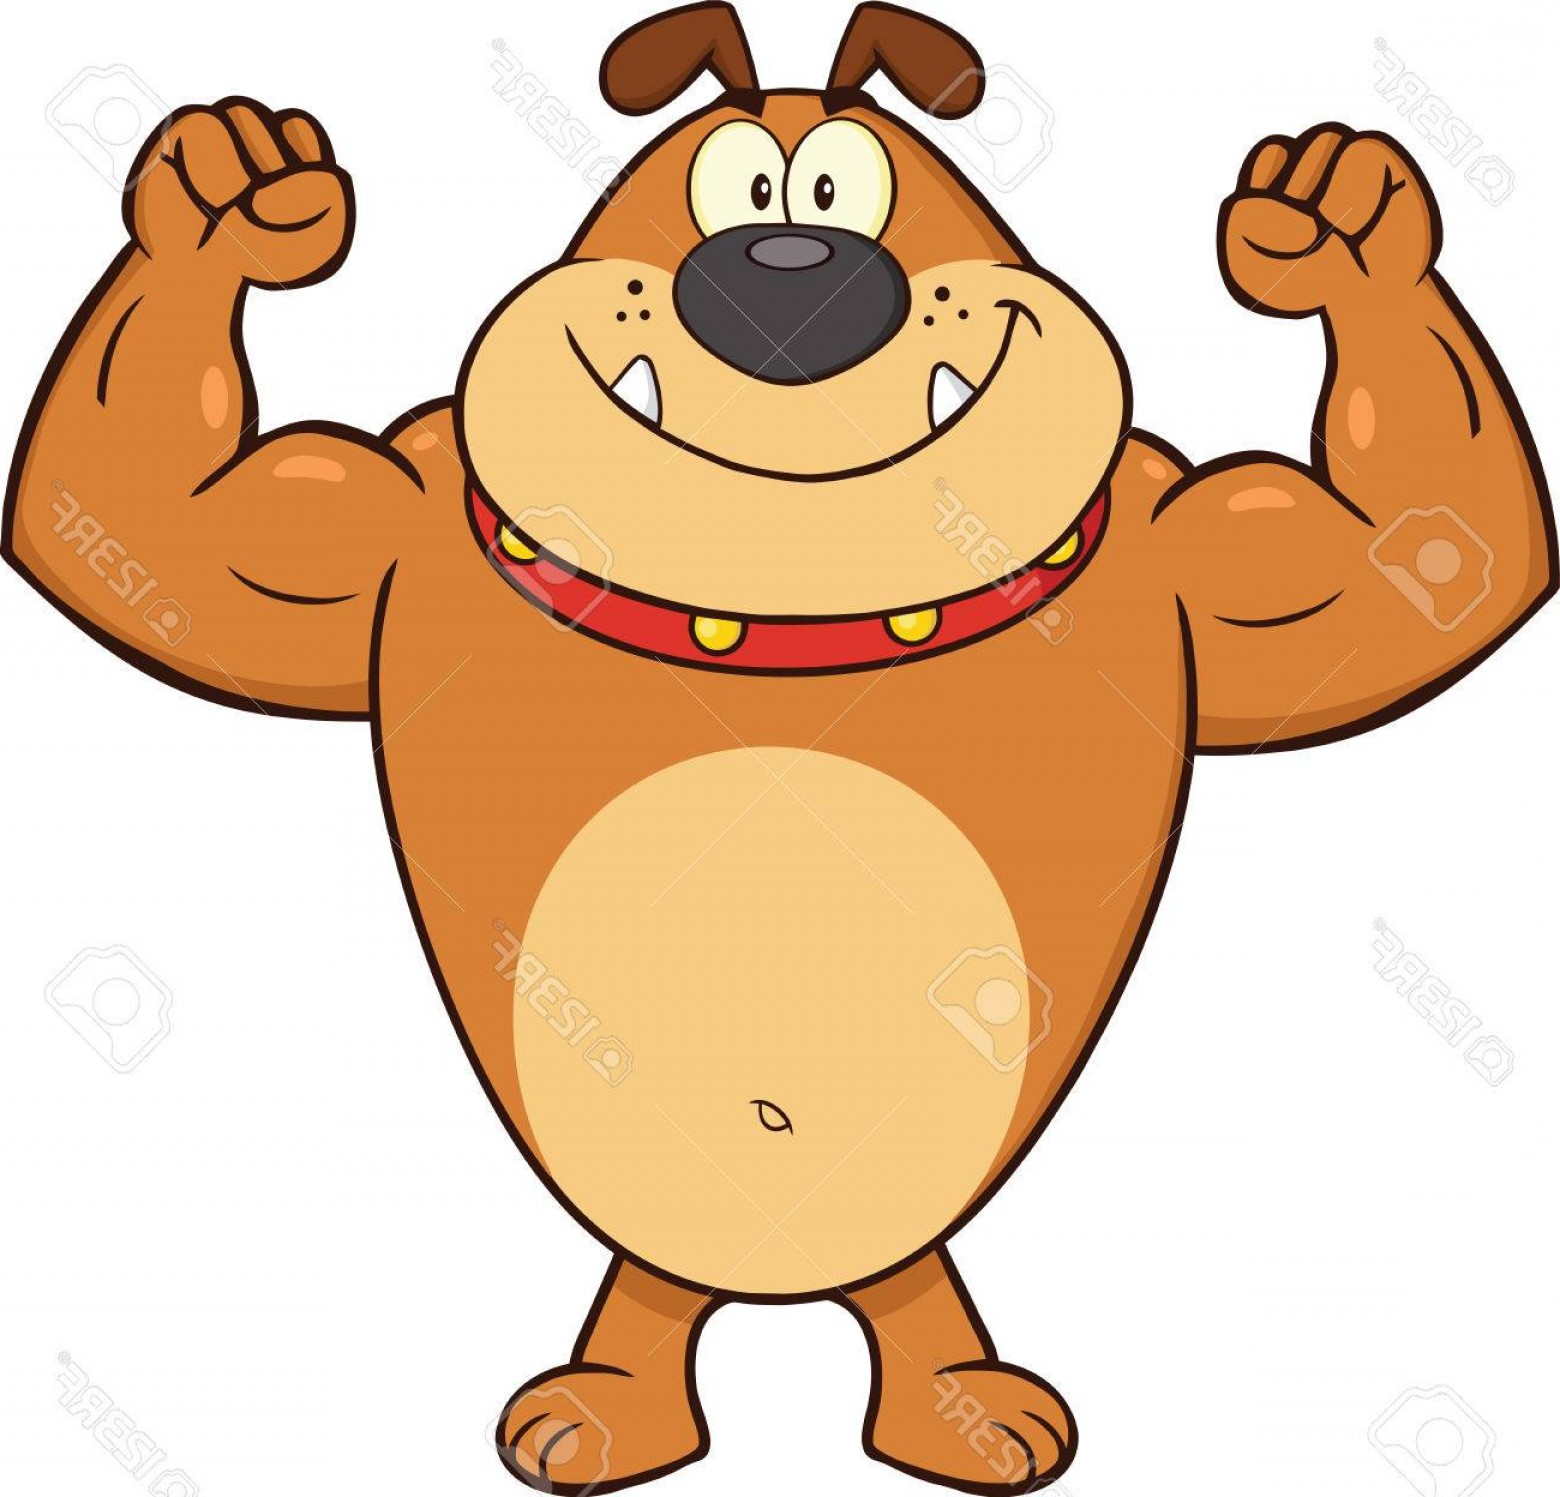 Vector Smiling Bulldog: Photosmiling Brown Bulldog Cartoon Mascot Character Showing Muscle Arms Illustration Isolated On White